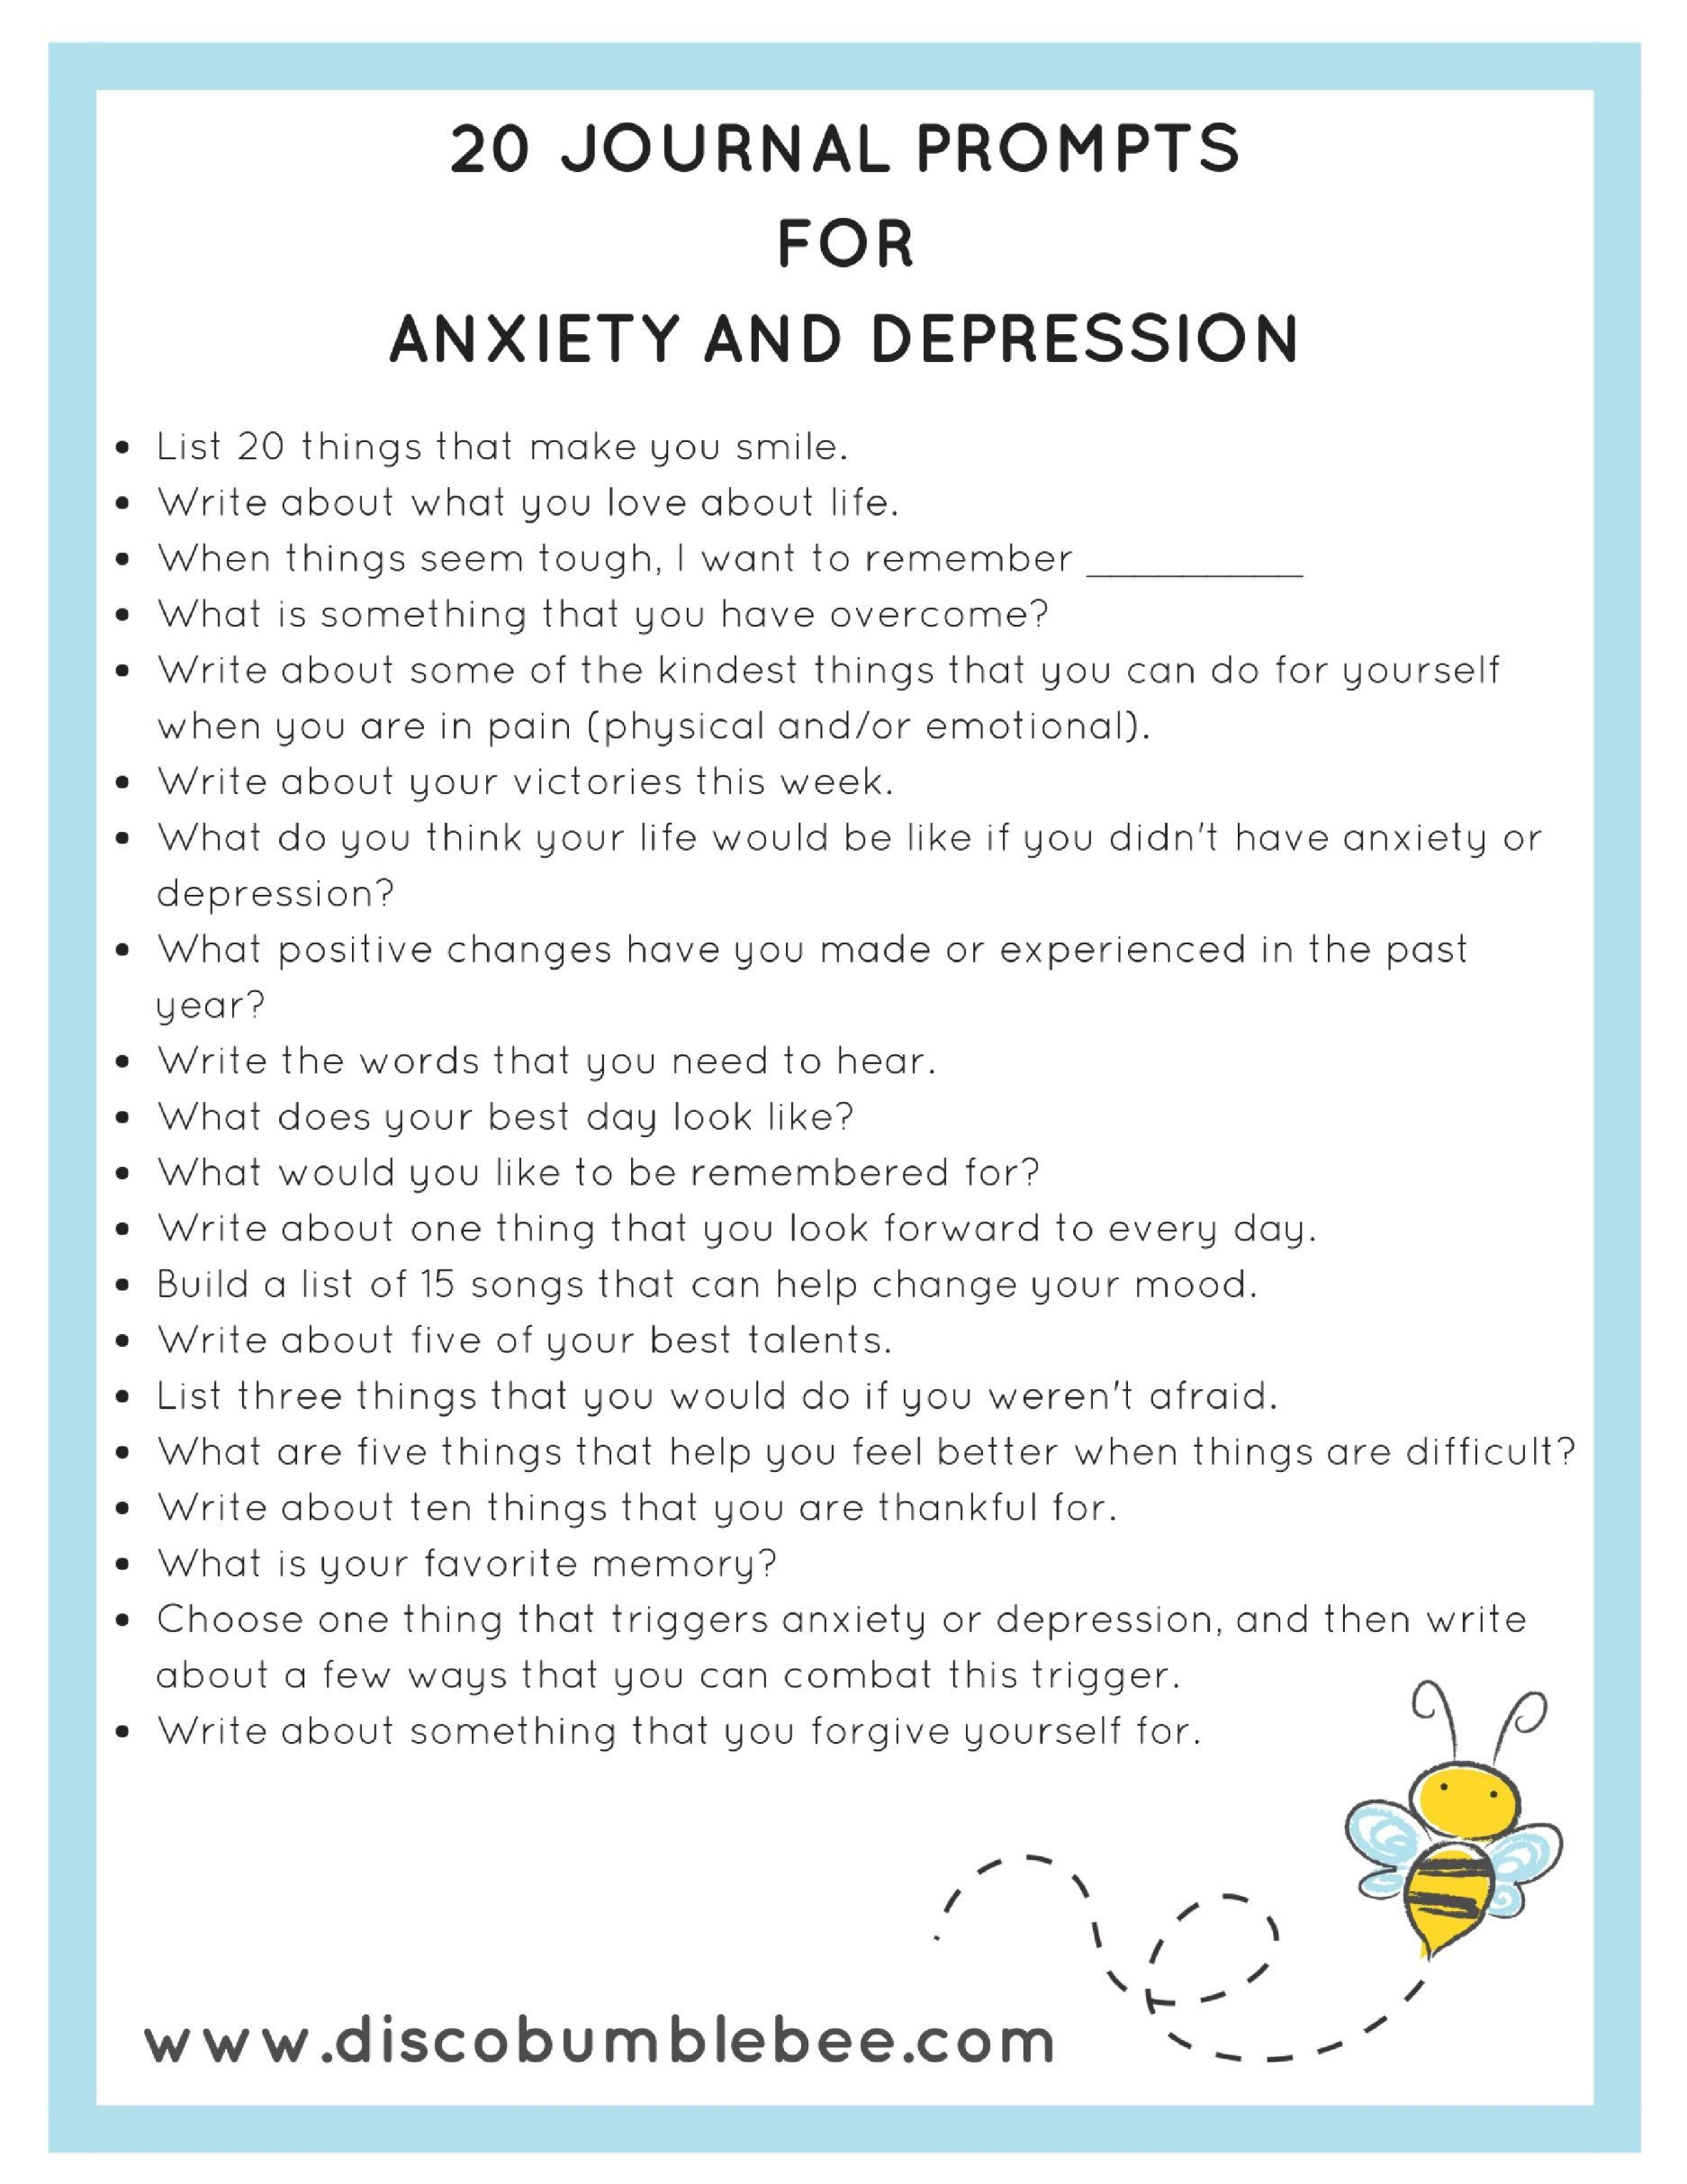 Journal Prompts For Anxiety And Depression Artideas